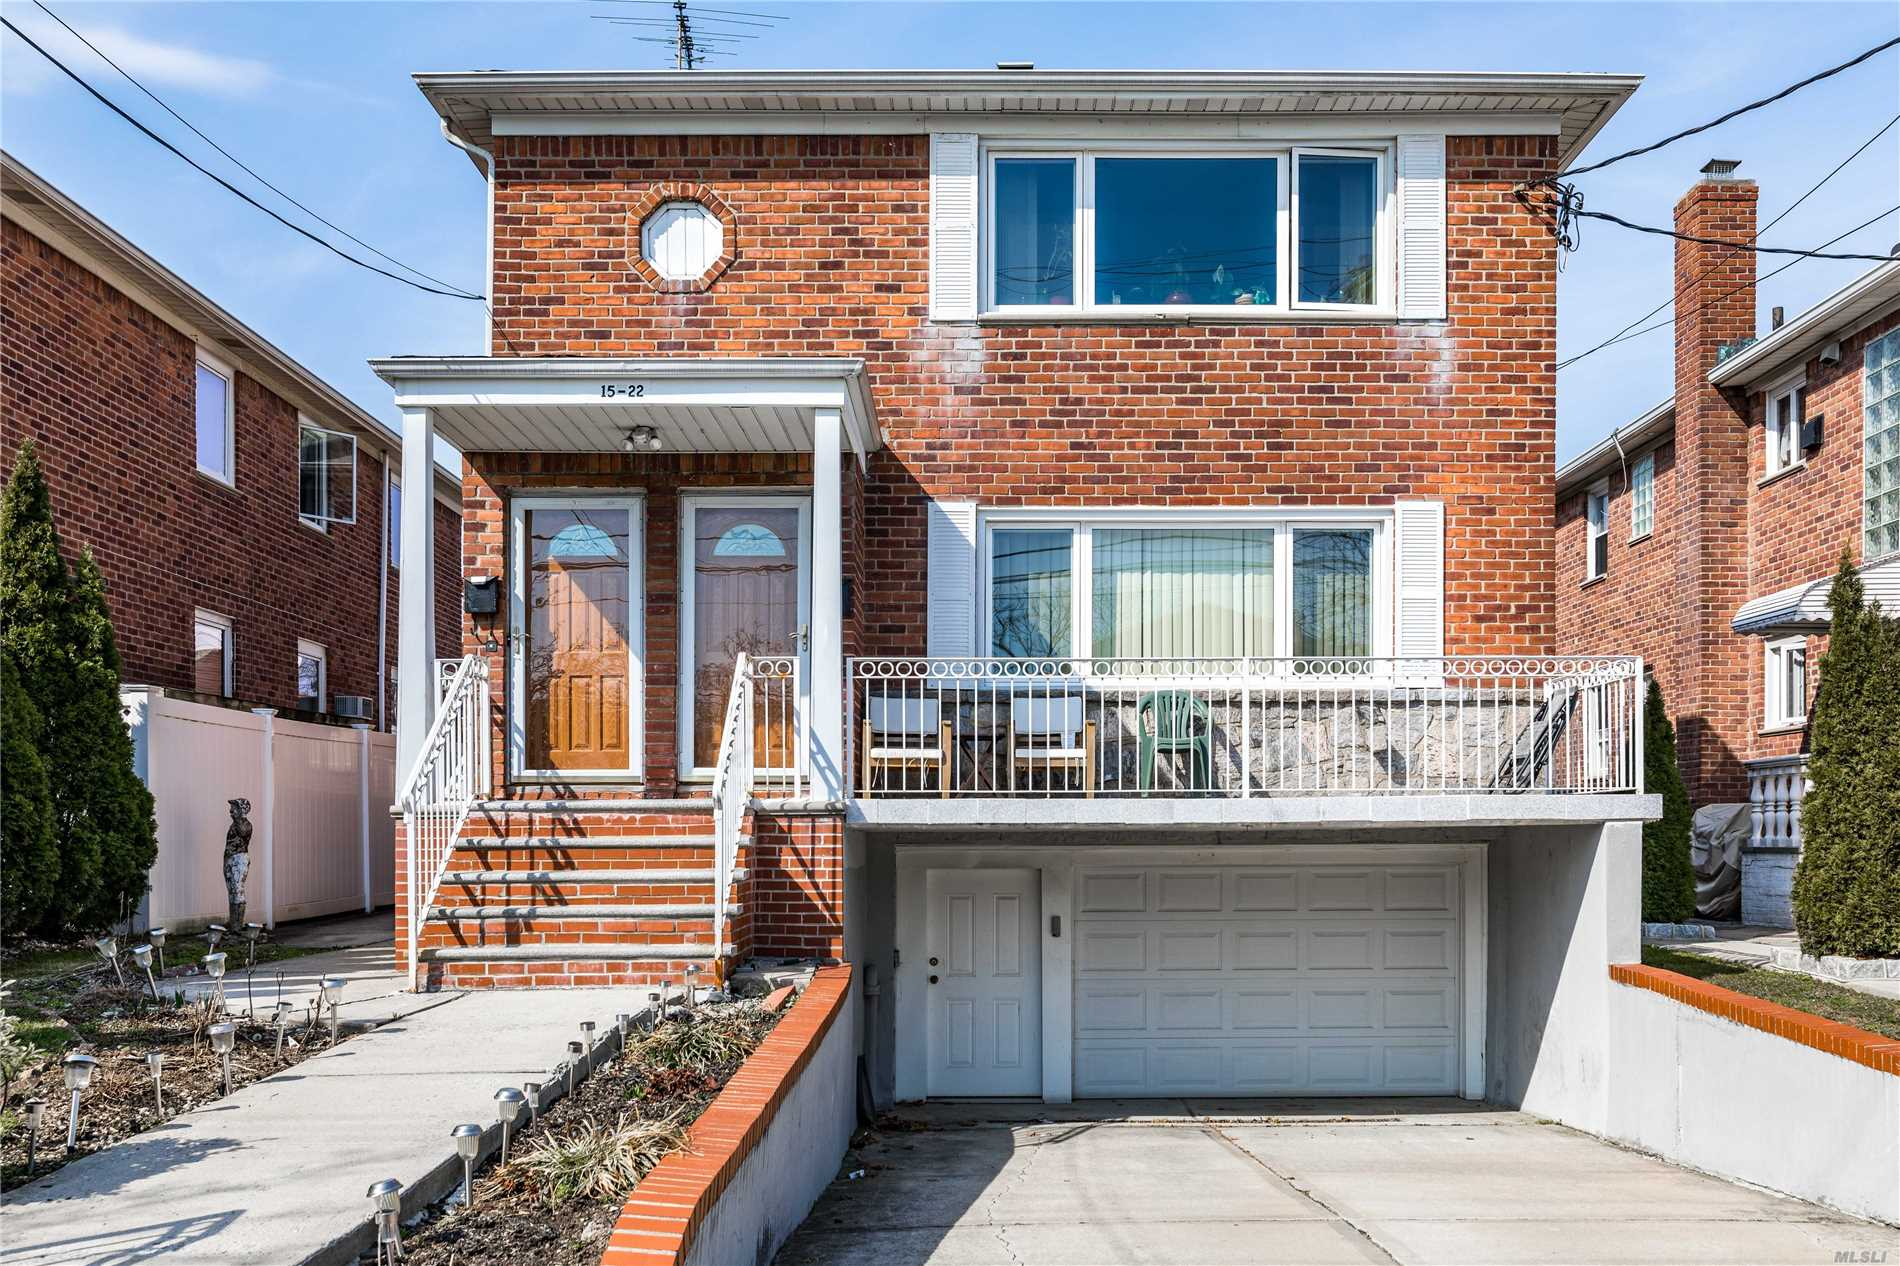 Beautiful 2 Family Detached All Brick Home Featuring Spacious 3BR Over 3BR Apartments Plus Full Finished Basement and Beautiful Manicured Back Yard. Convenient Location!